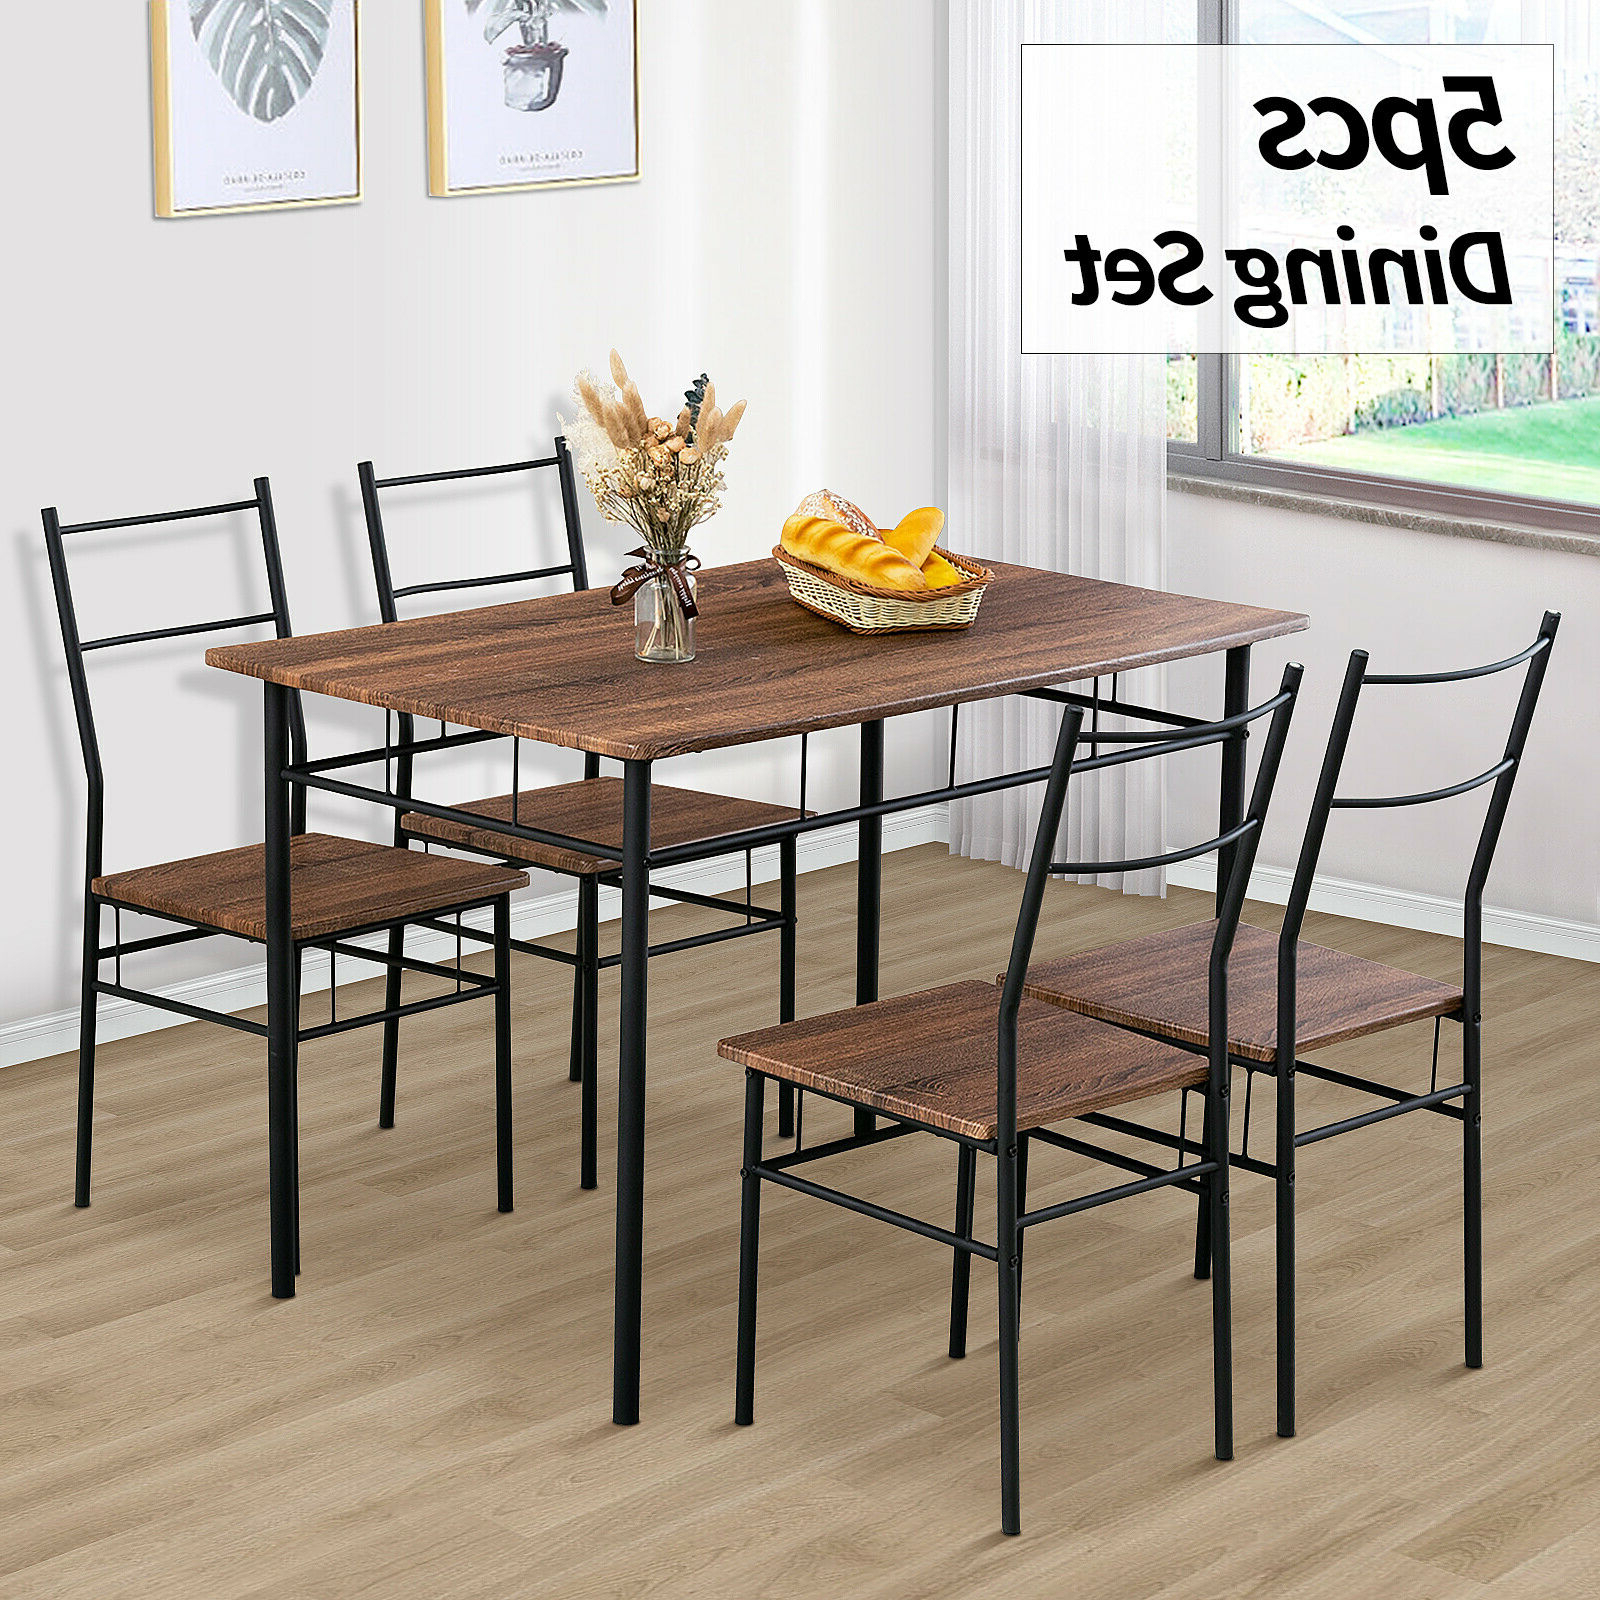 5 Piece Metal Dining Table Furniture Set 4 Chairs Wood Top Dining Room Brown Inside 2020 Wood Top Dining Tables (View 7 of 25)